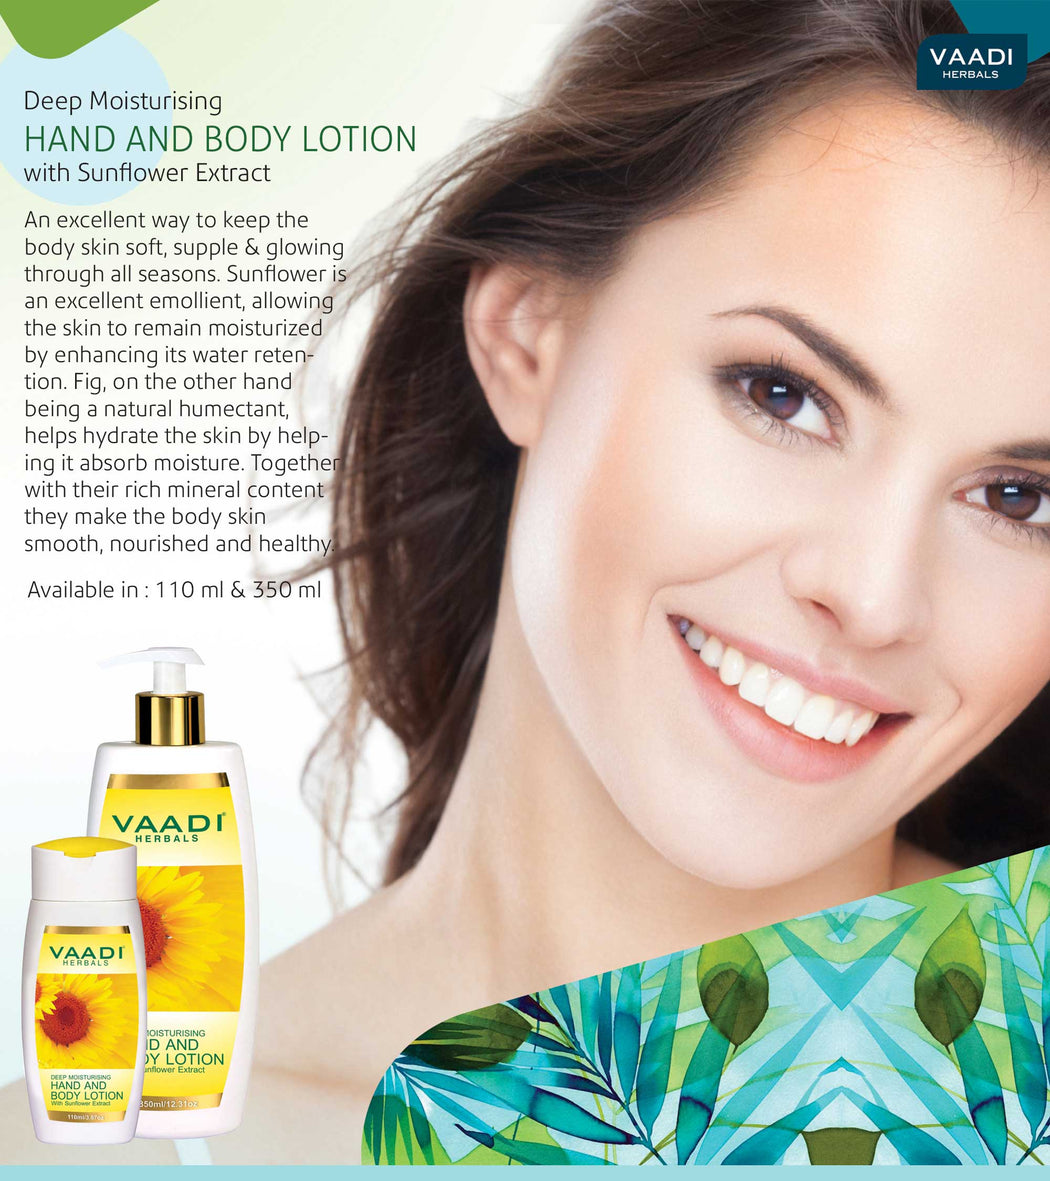 Organic Hand & Body Lotion with Sunflower Extract - Enhances Water Retention in Skin - Keeps Skin Soft (110 ml/4 fl oz)